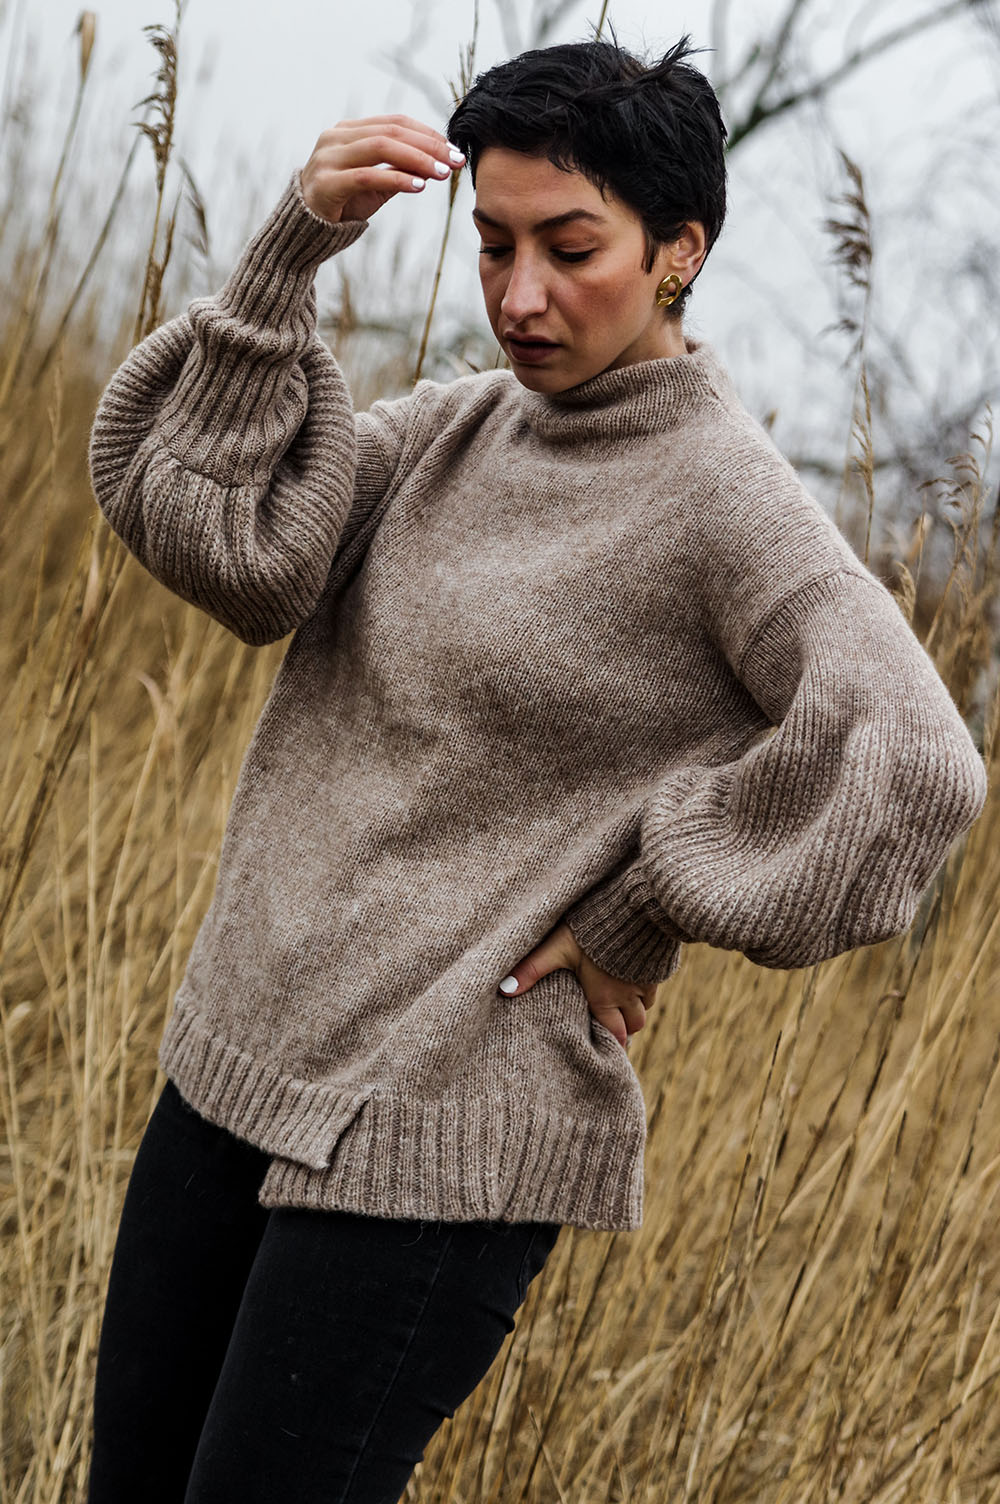 The-one-sustainable-fashion-brand-tou-need-to-add-to-your-wardrobe-sweater-handmade-spring-outfit-eco-friendly-sweater-scandinavian-fashion-hygge-outfit-idea